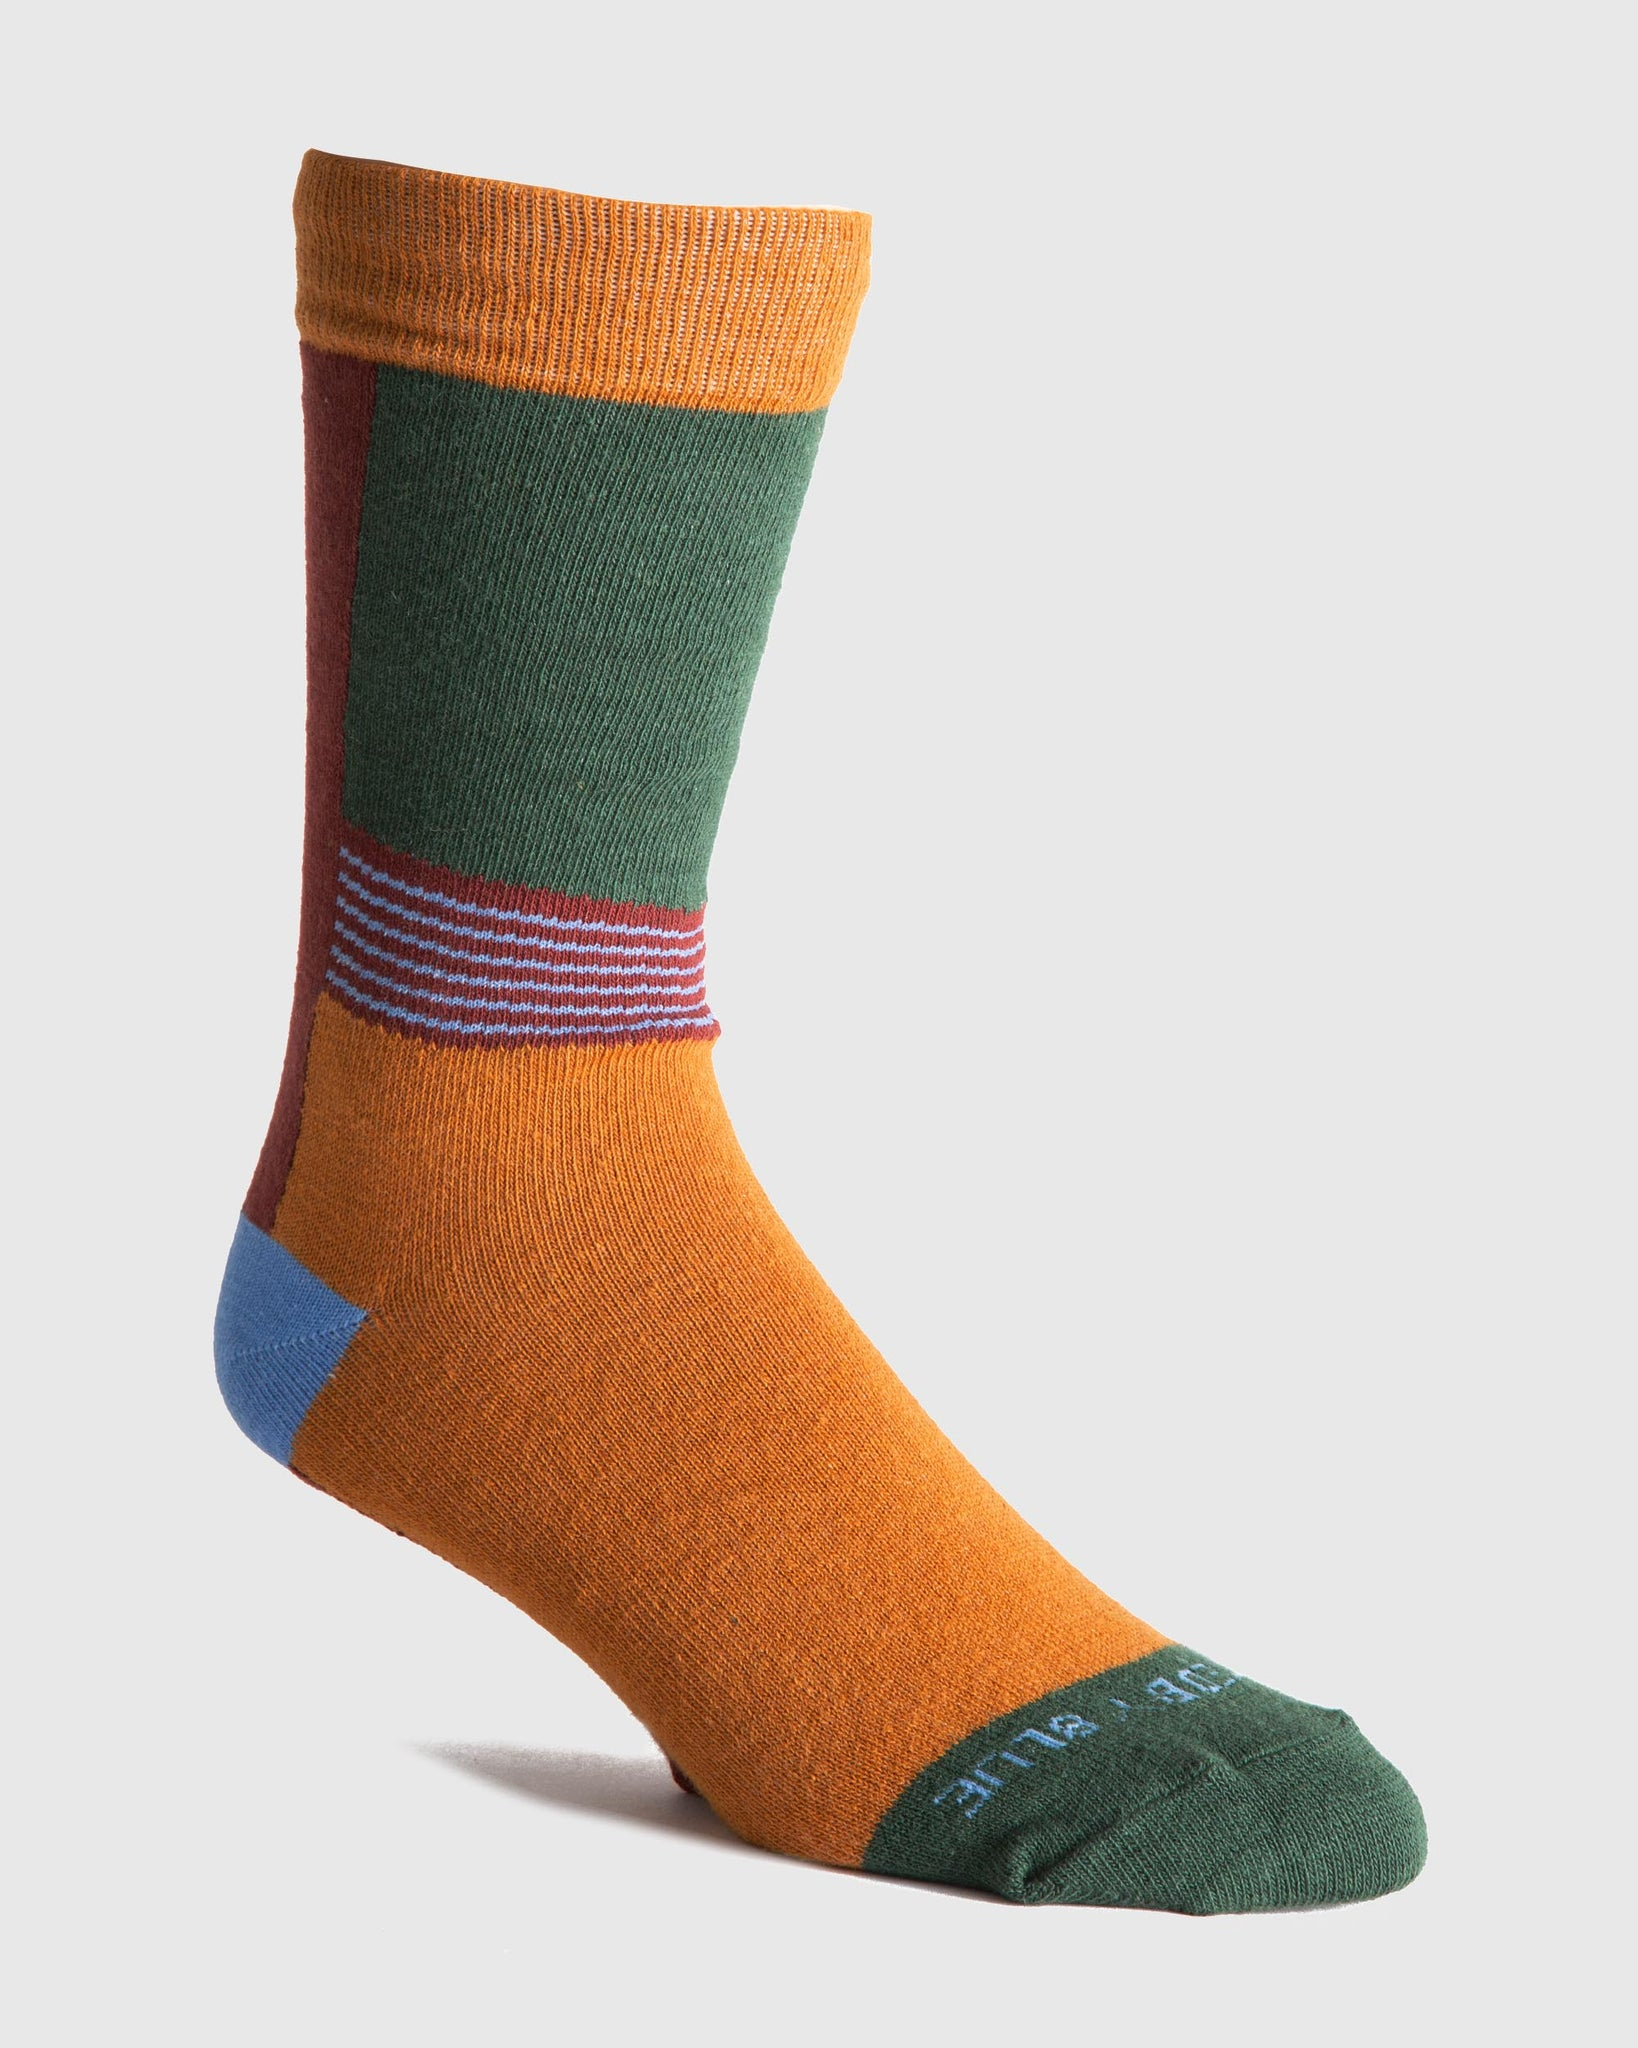 Printed SoftHemp™ Sock